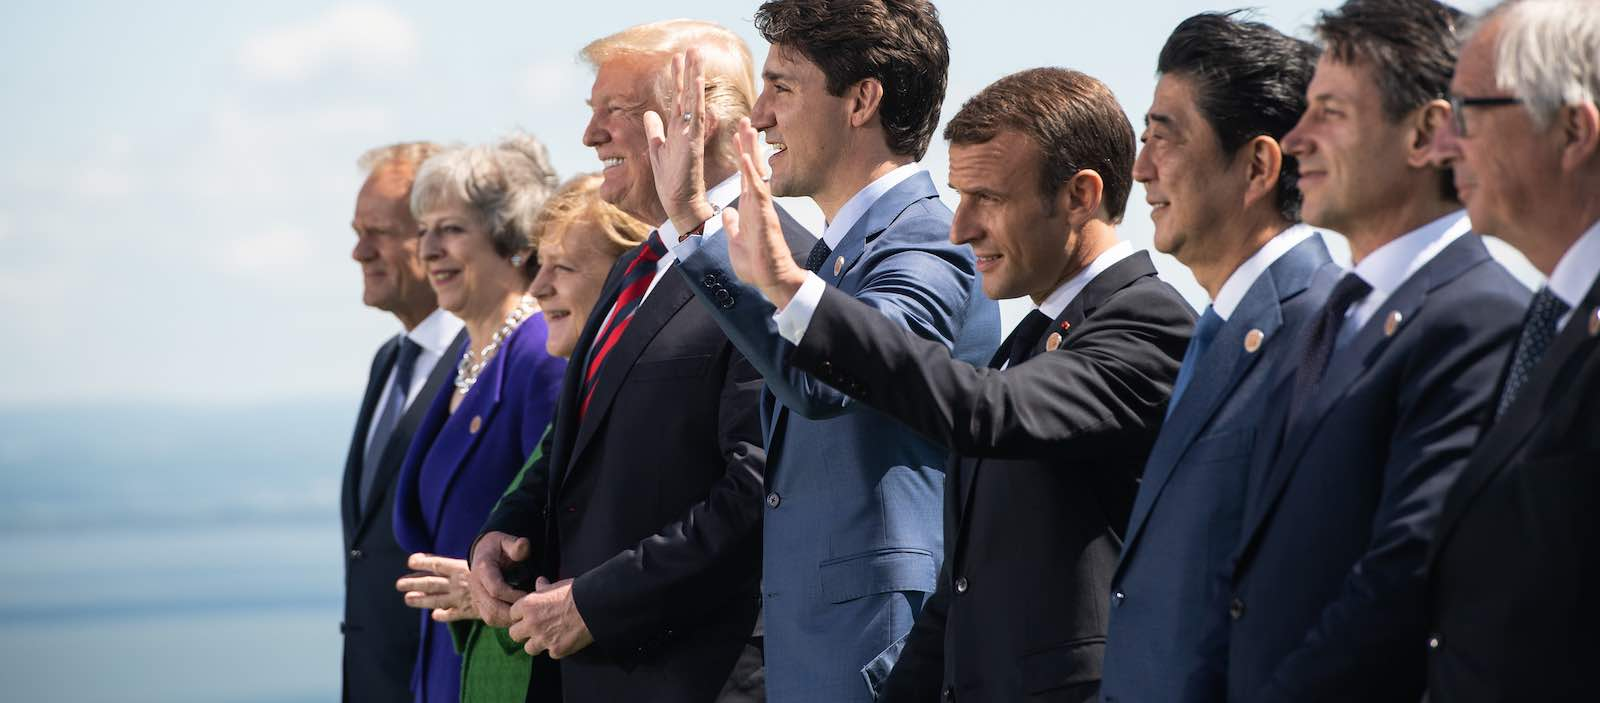 The G7 leaders in 2018, Canada (Photo: GAC-AMC/Flickr)